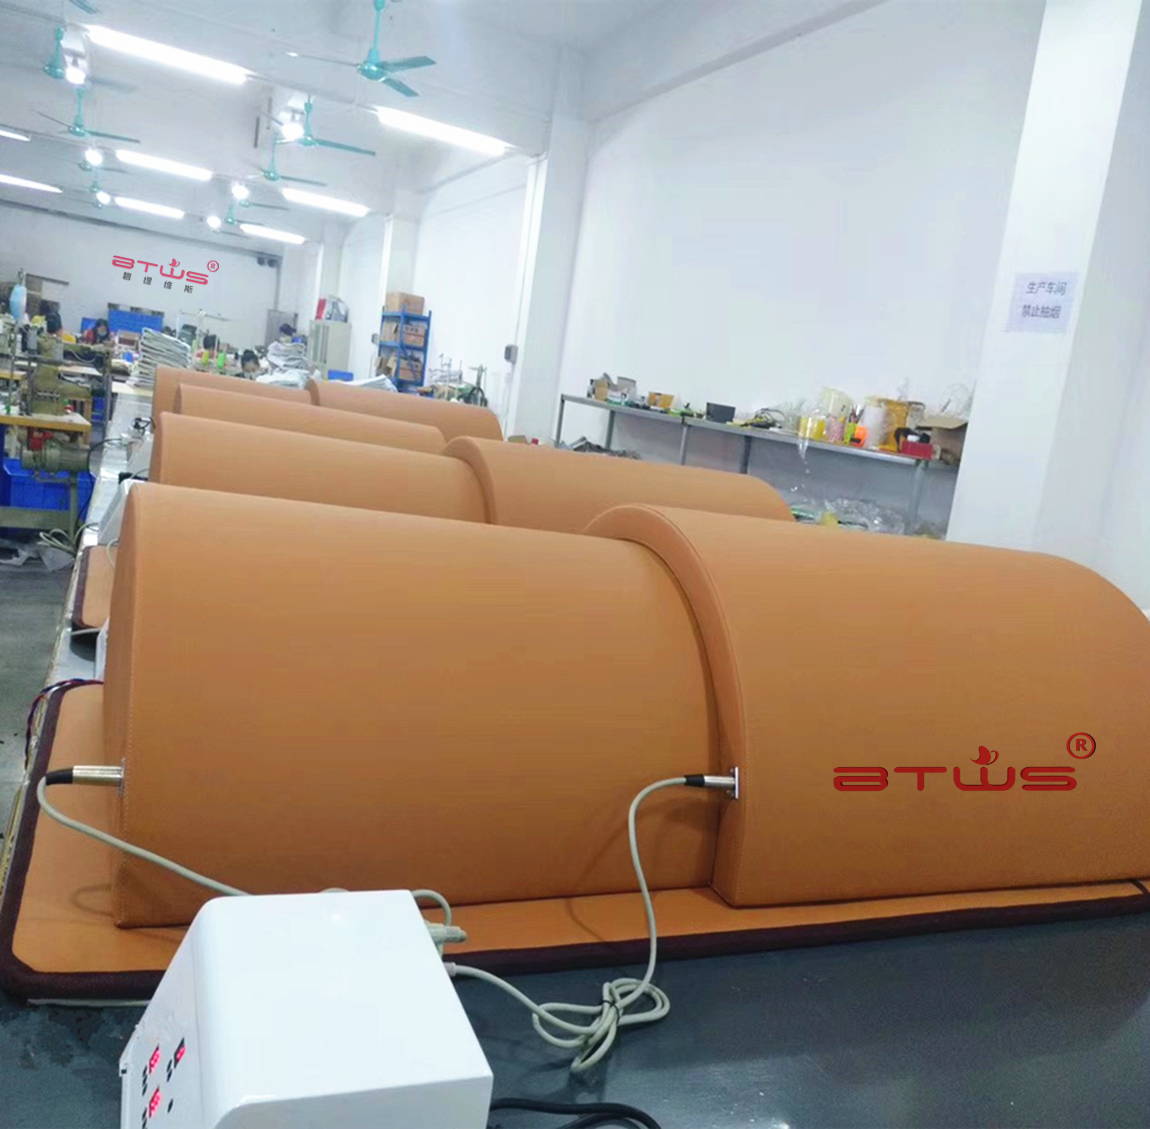 BTWS high quality FIR sauna dome fitness equipment for sale infrared spa capsule equipment